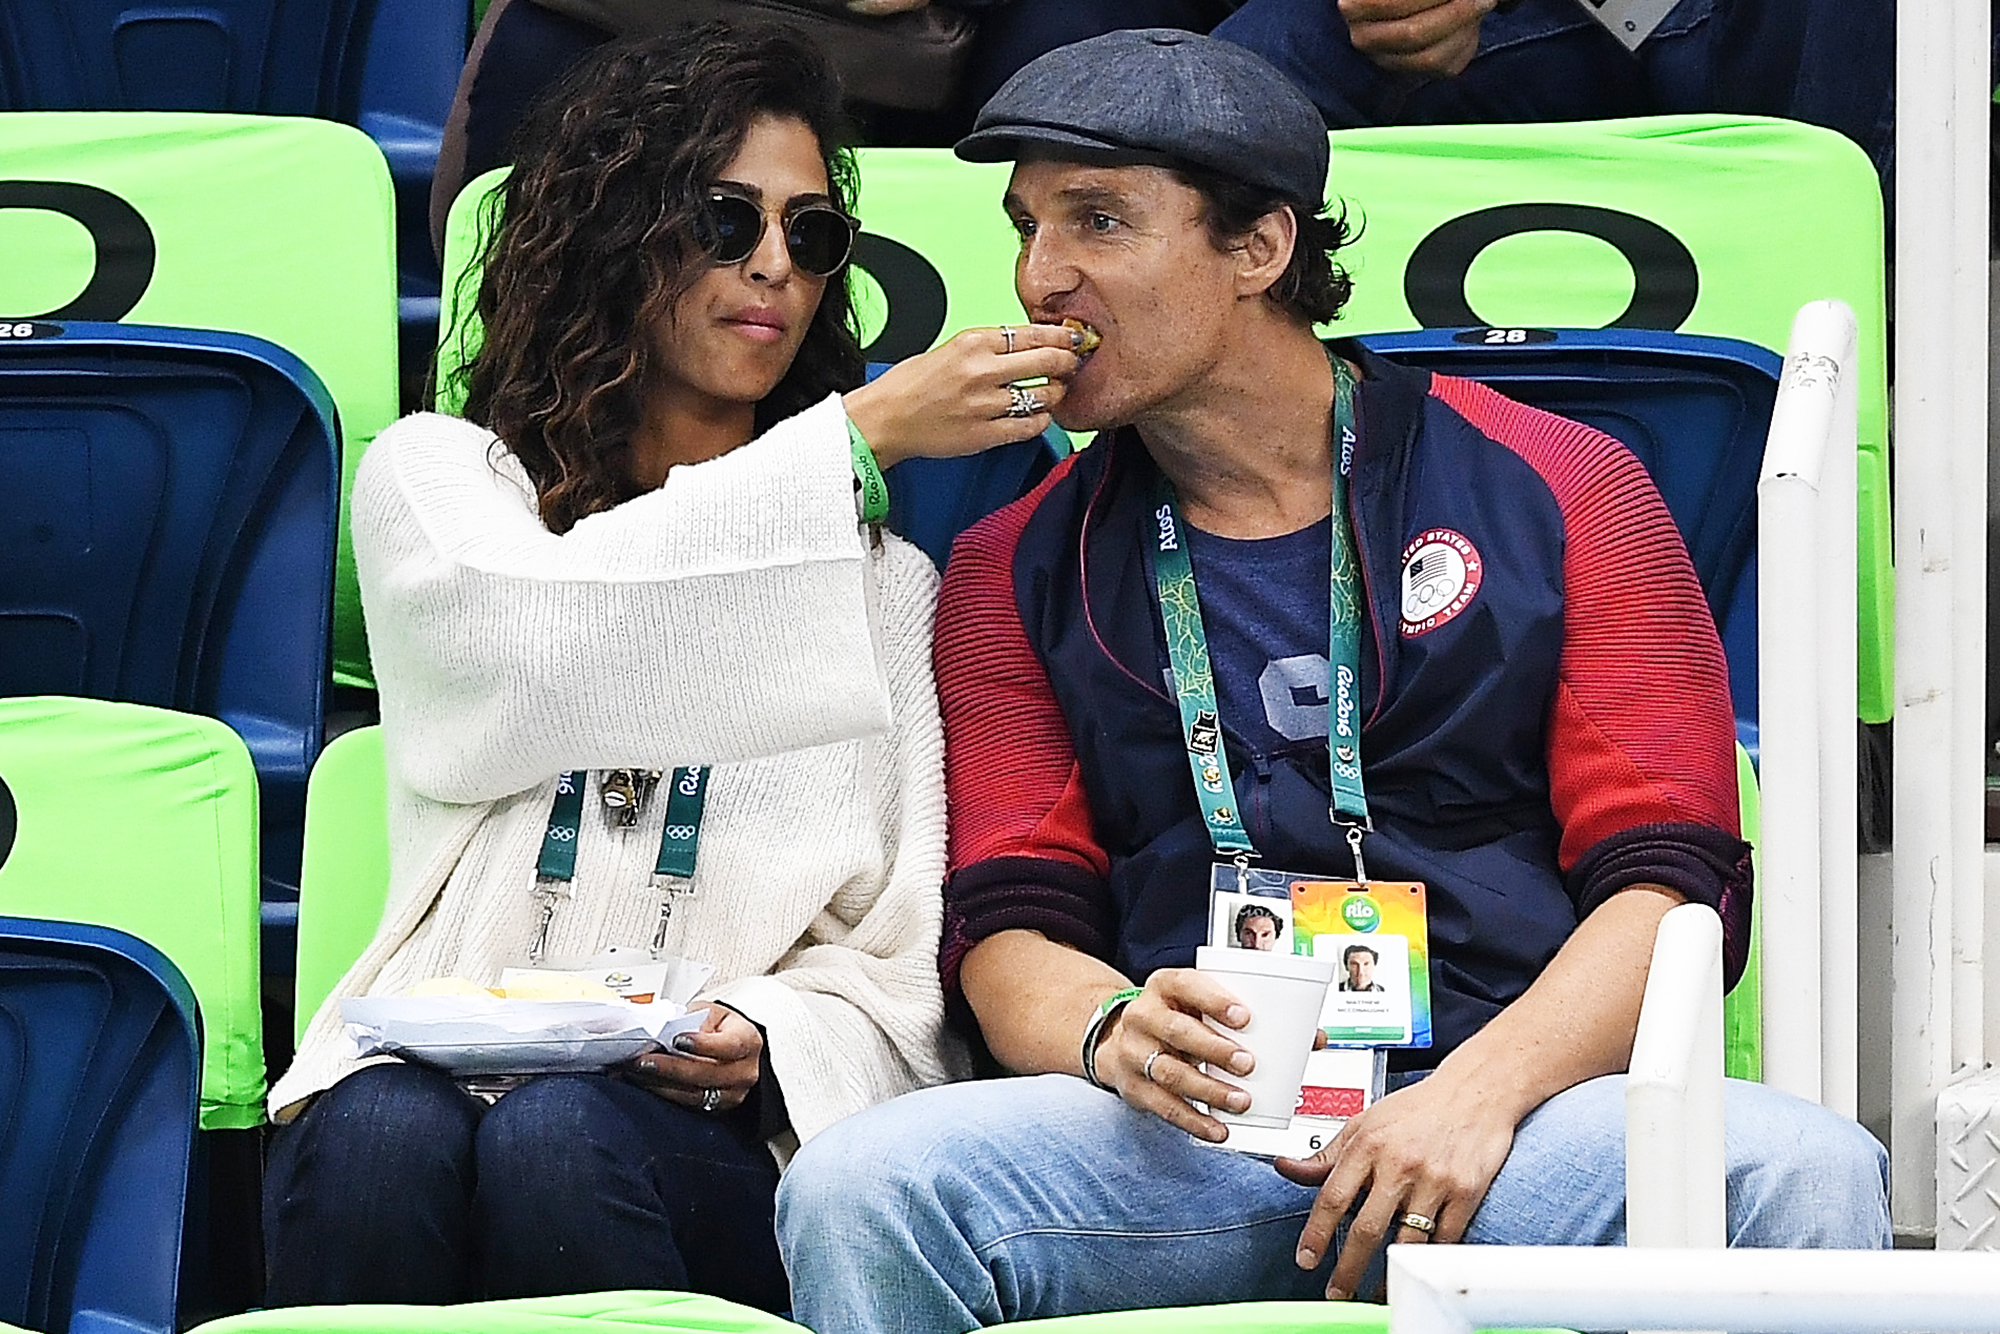 Matthew McConaughey and Camilla Alvez attend swimming semifinals and finals on Day 5 of the Rio 2016 Olympic Games, on Aug. 9, 2016 in Rio de Janeiro, Brazil.